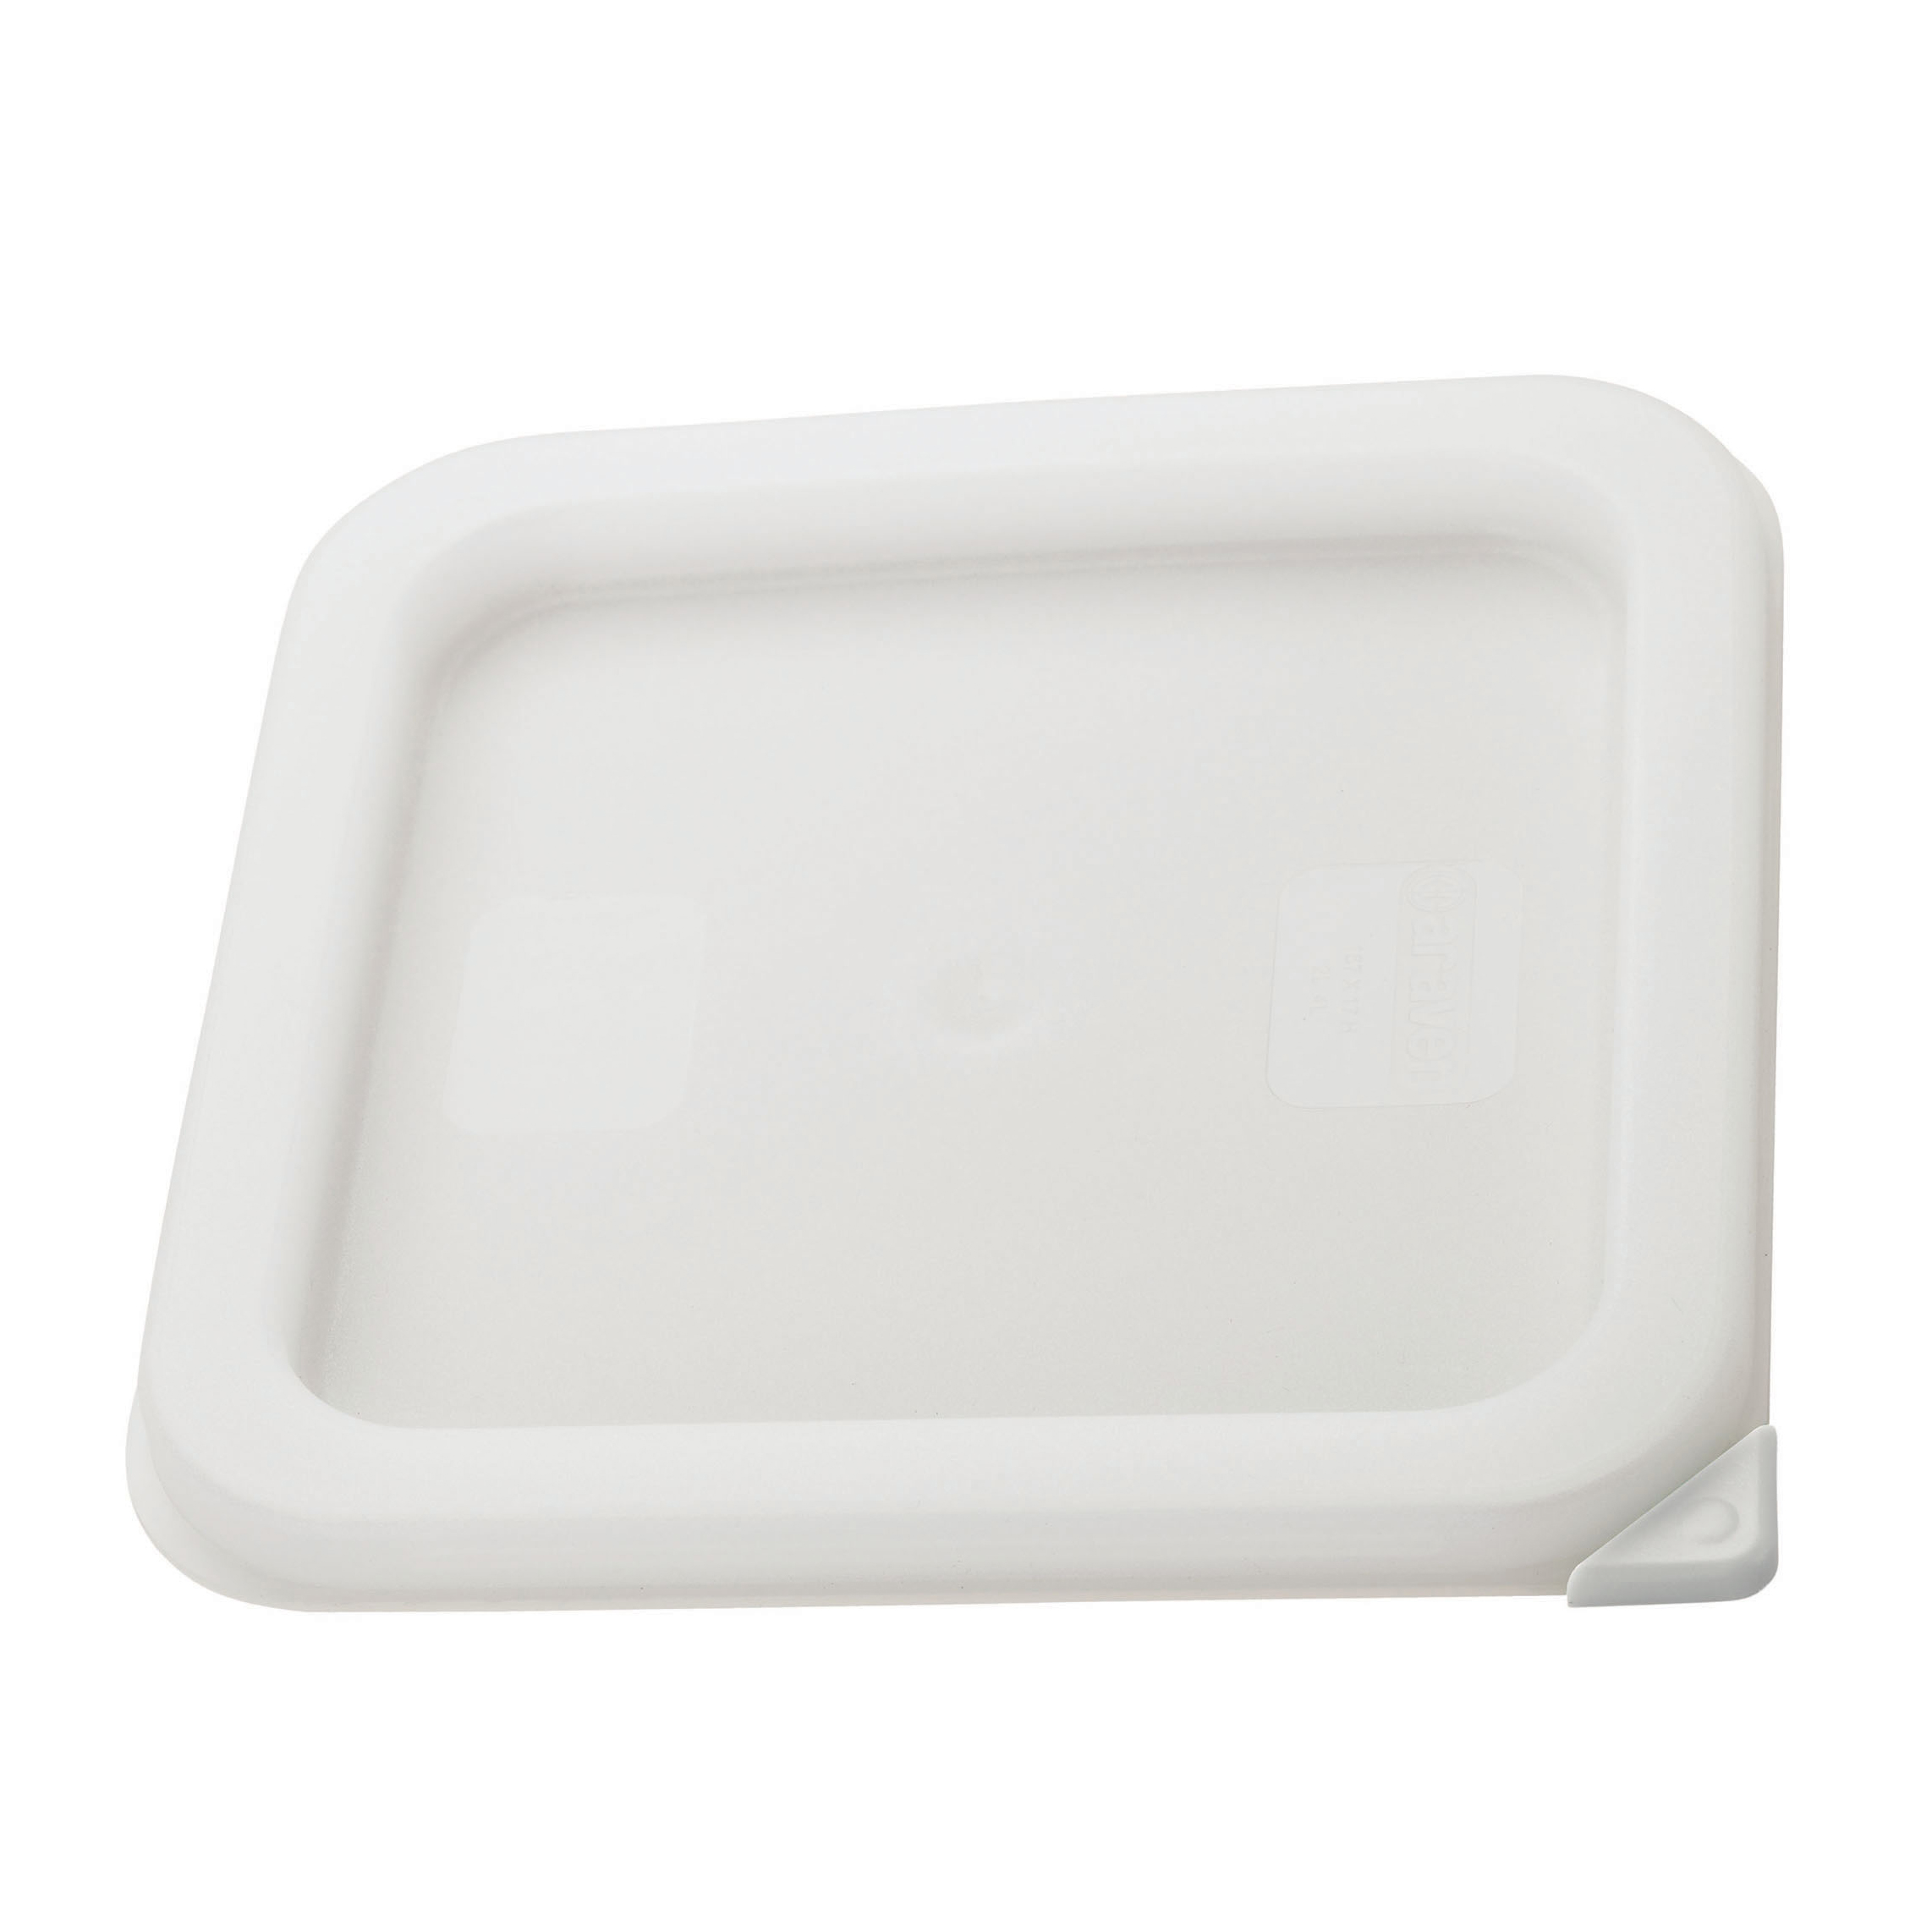 Winco PECC-S food storage container cover